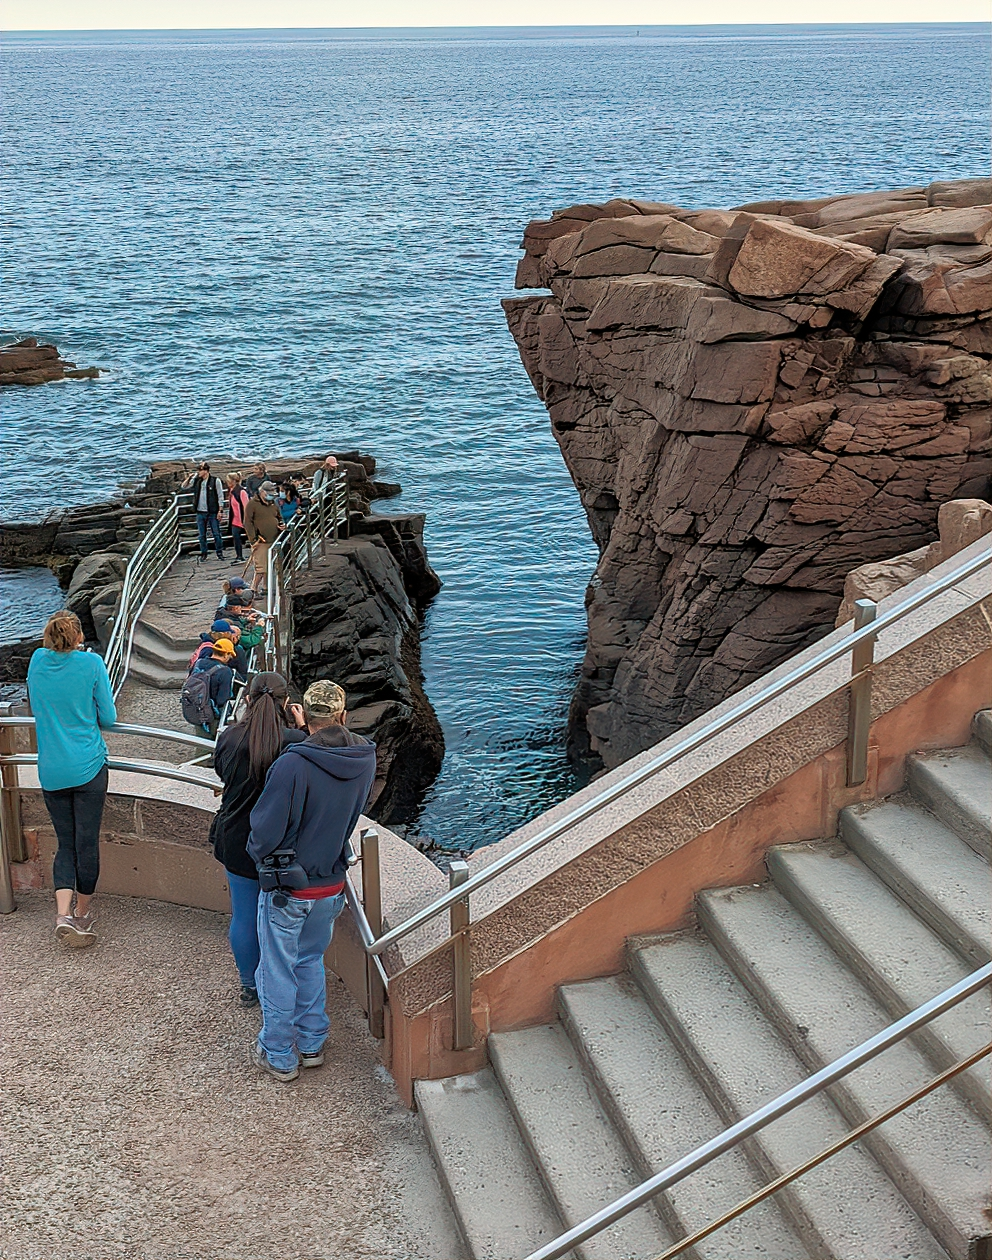 During my recent visit, Thunder Hole showed no desire to thunder.